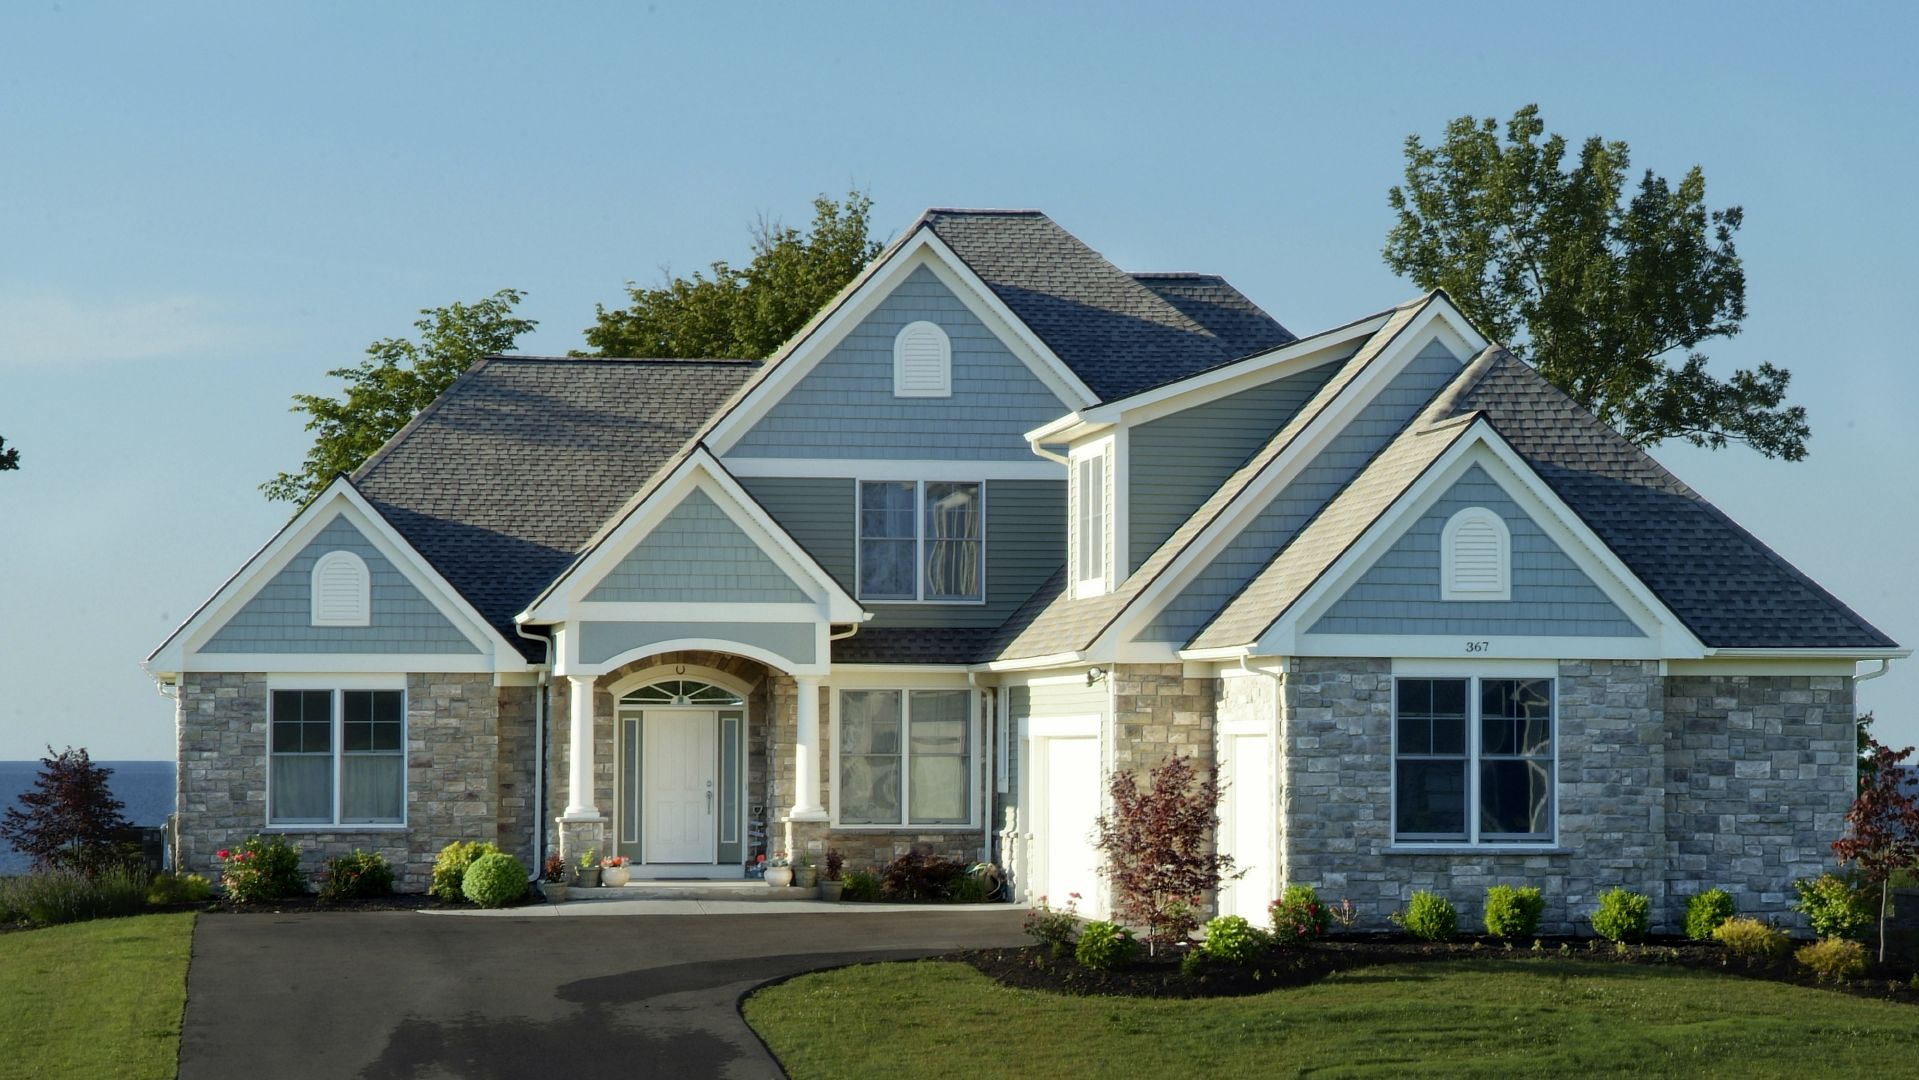 Home plans that fit your life. Call Carini today for a free ...